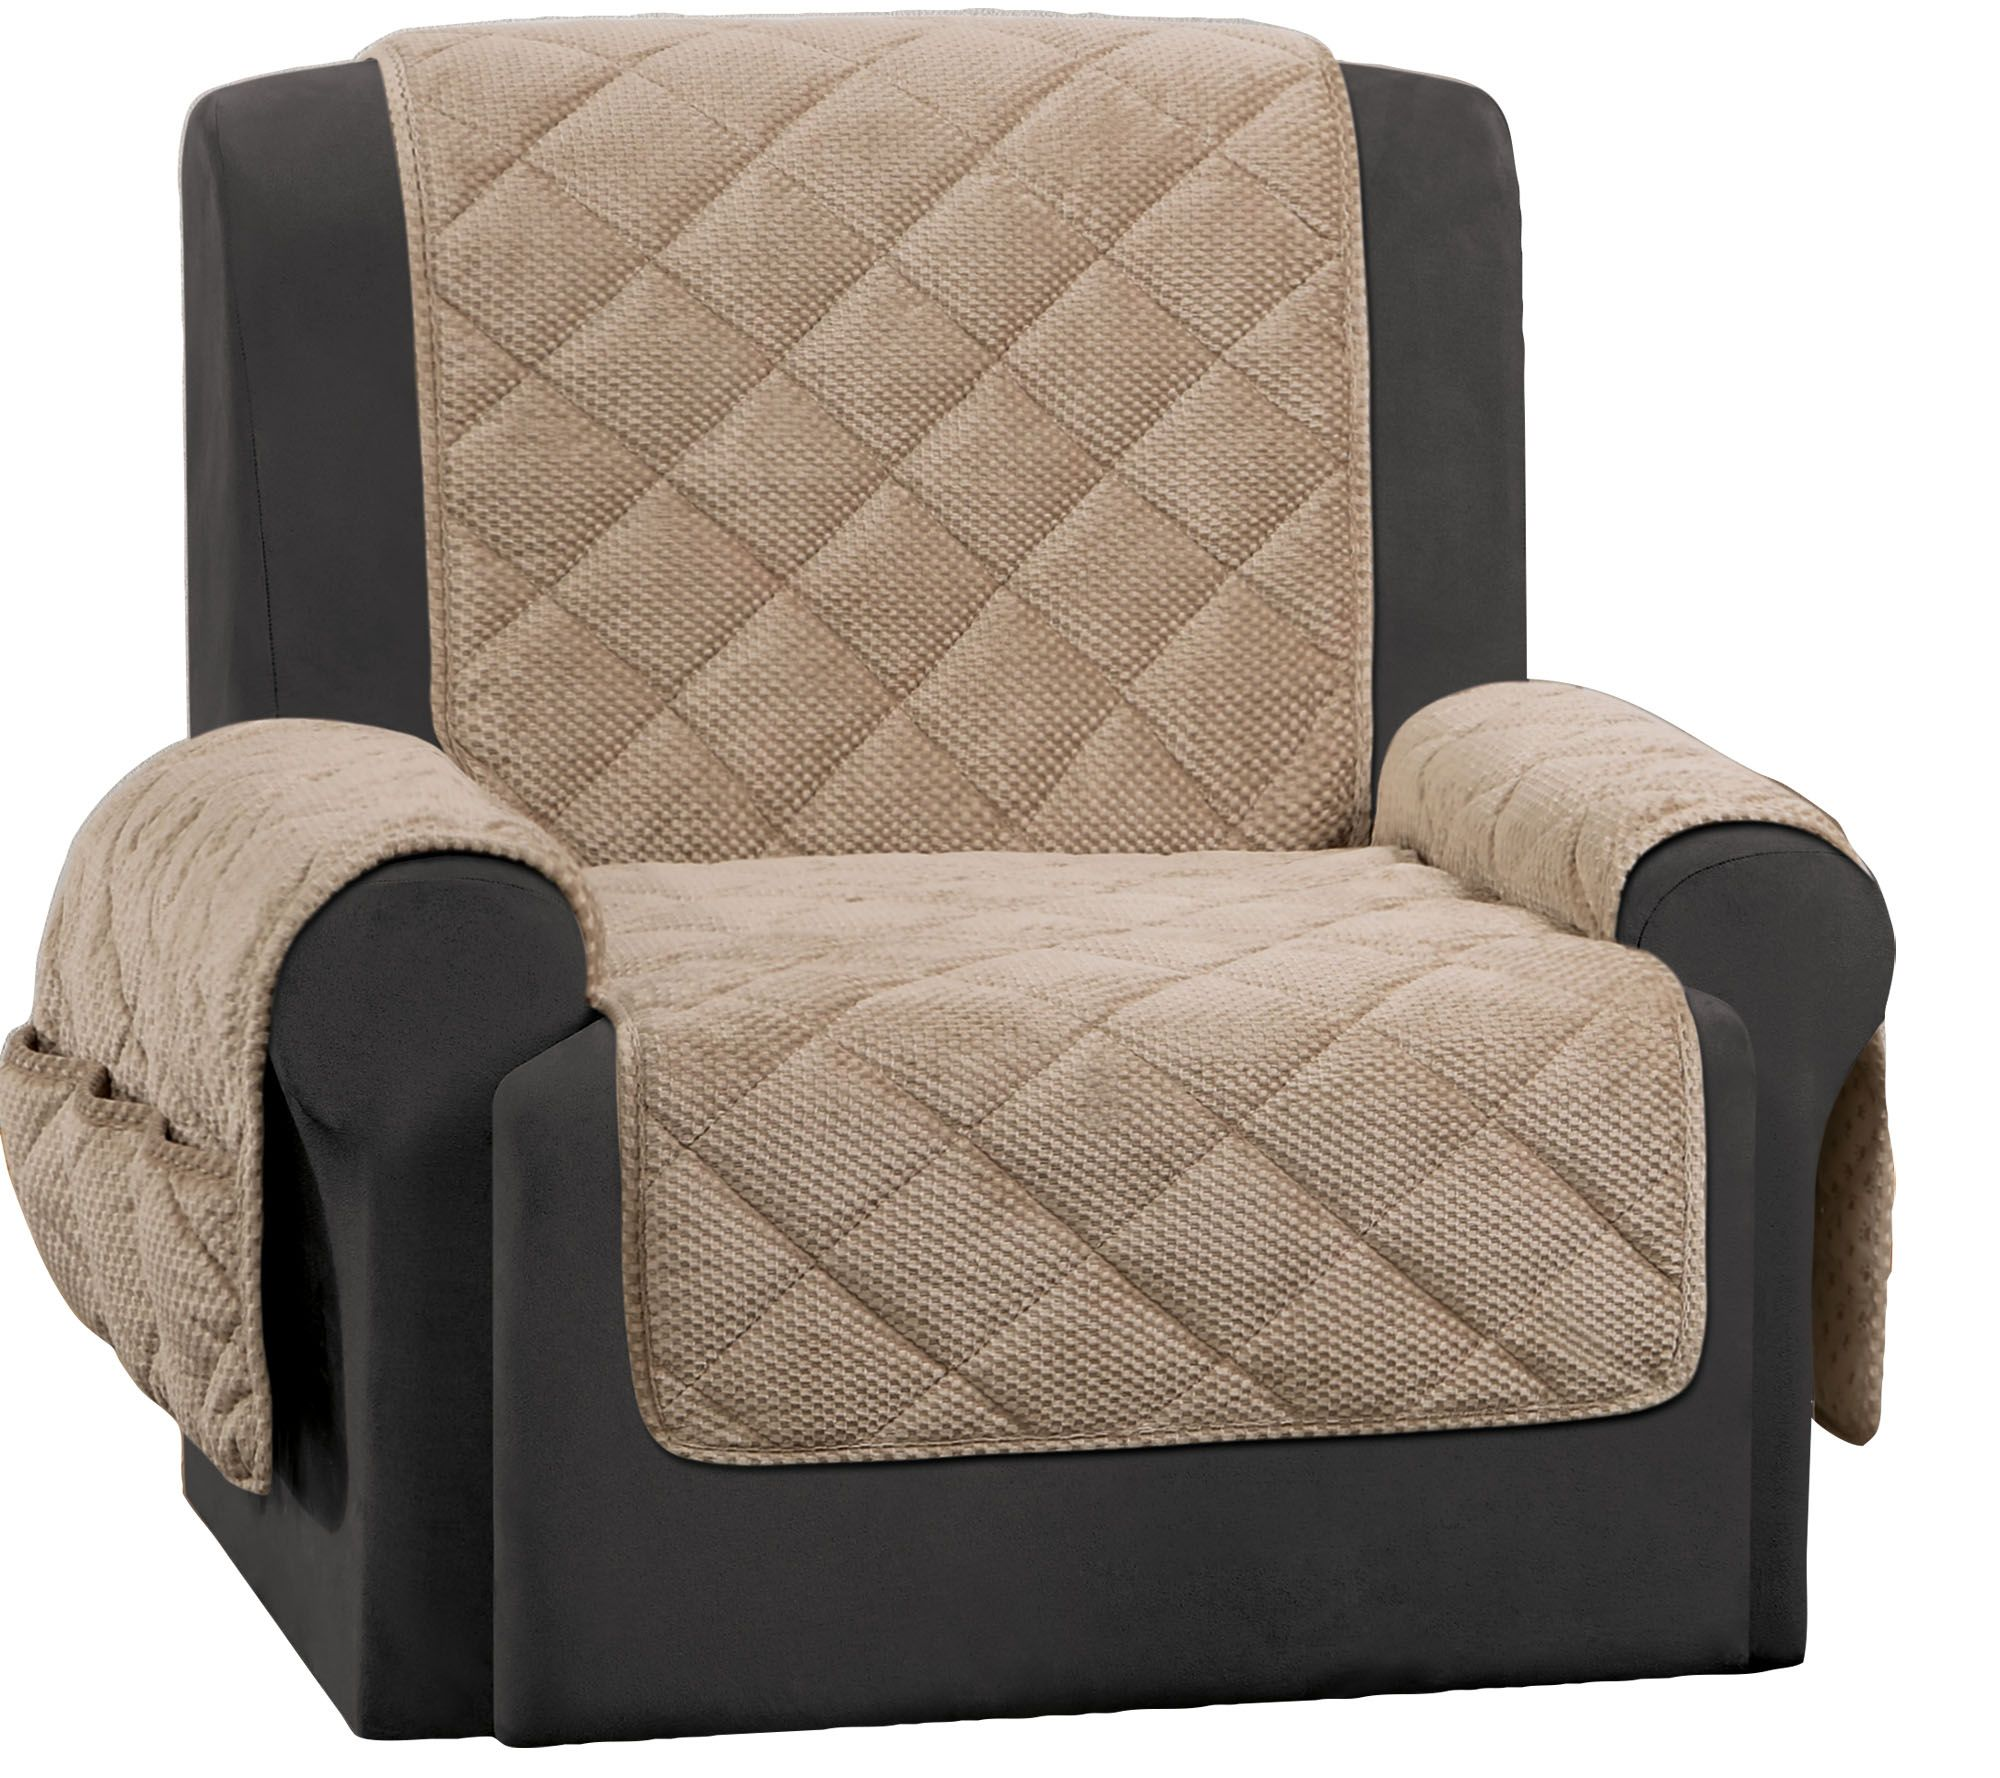 Sure Fit Recliner Furniture Cover with Textured Pique Fabric